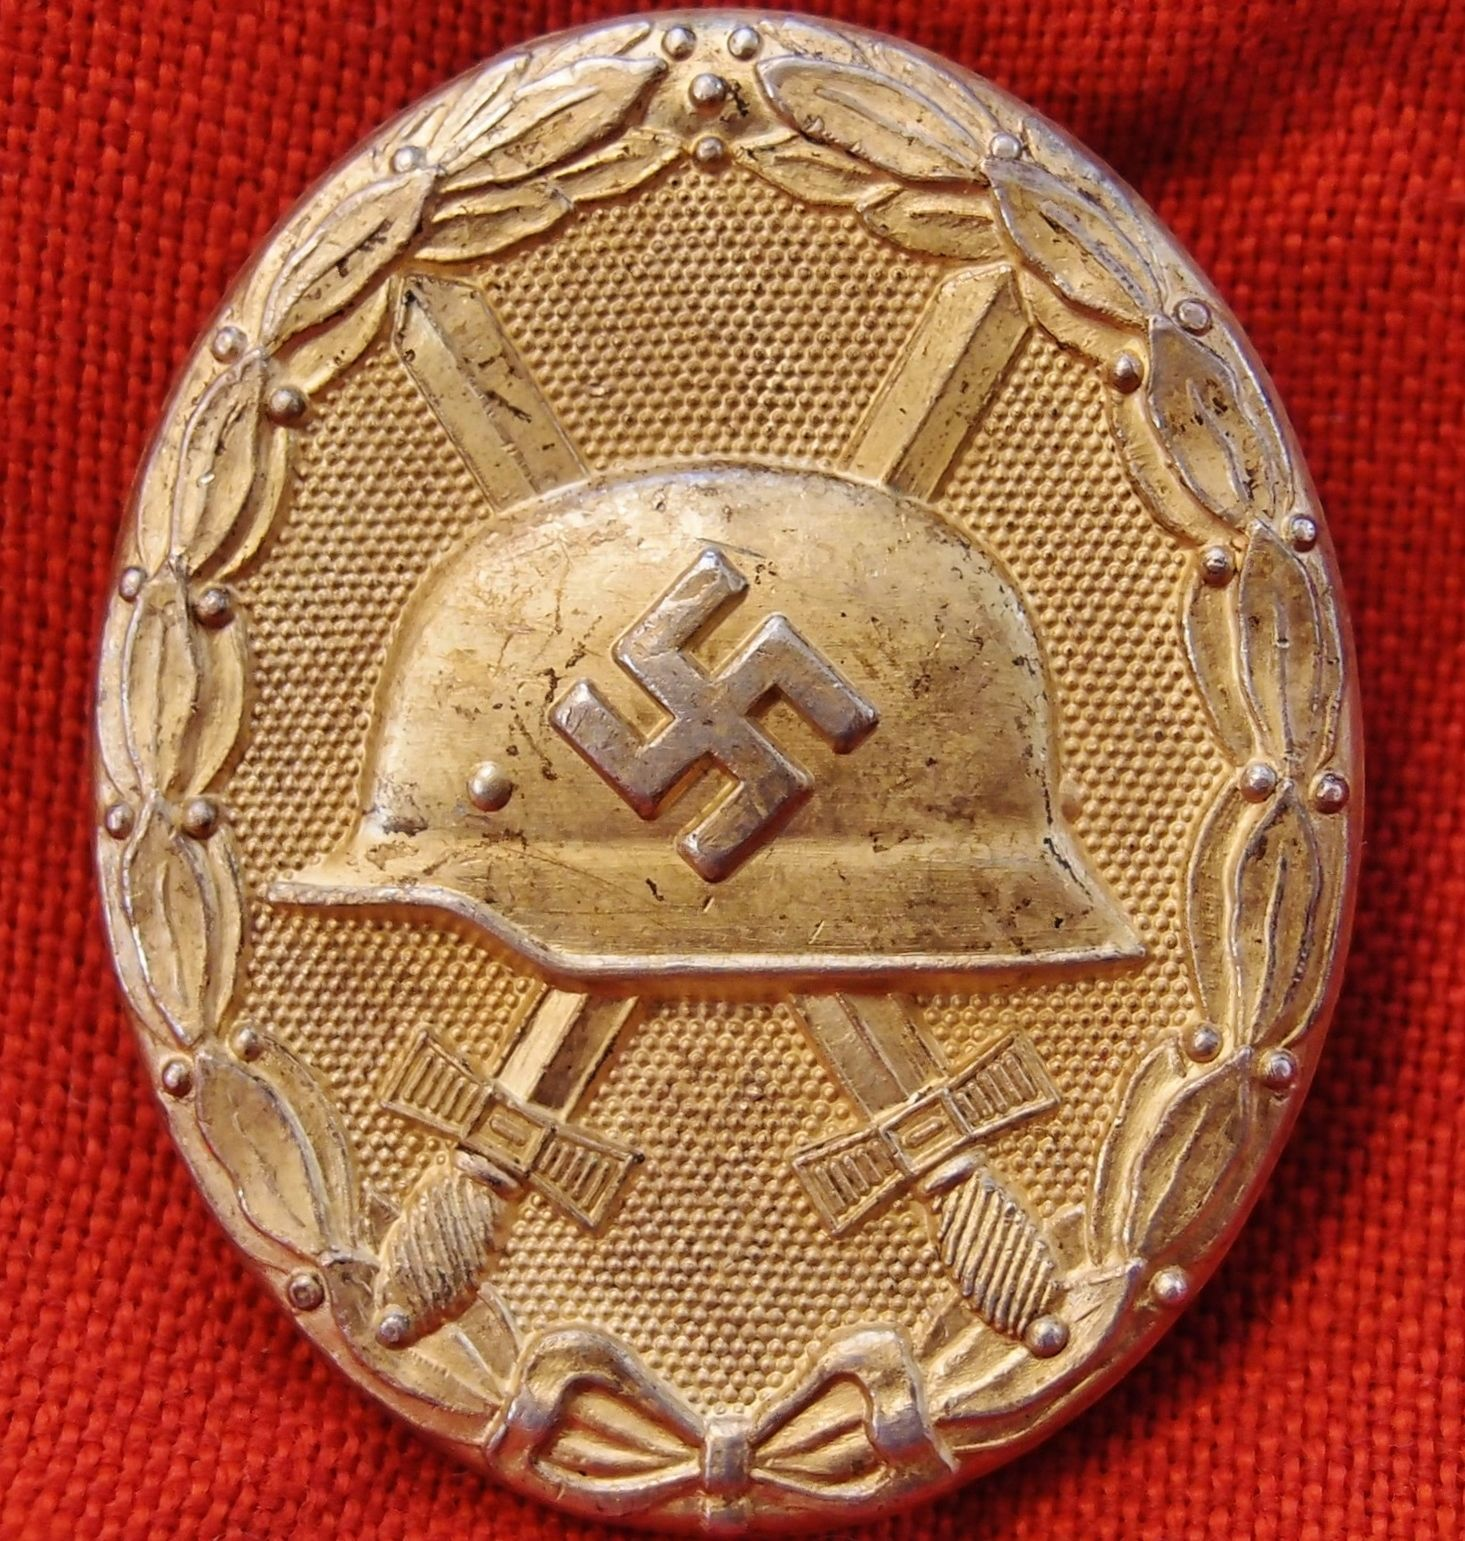 **SOLD** WW2 GERMAN WOUND BADGE IN GOLD